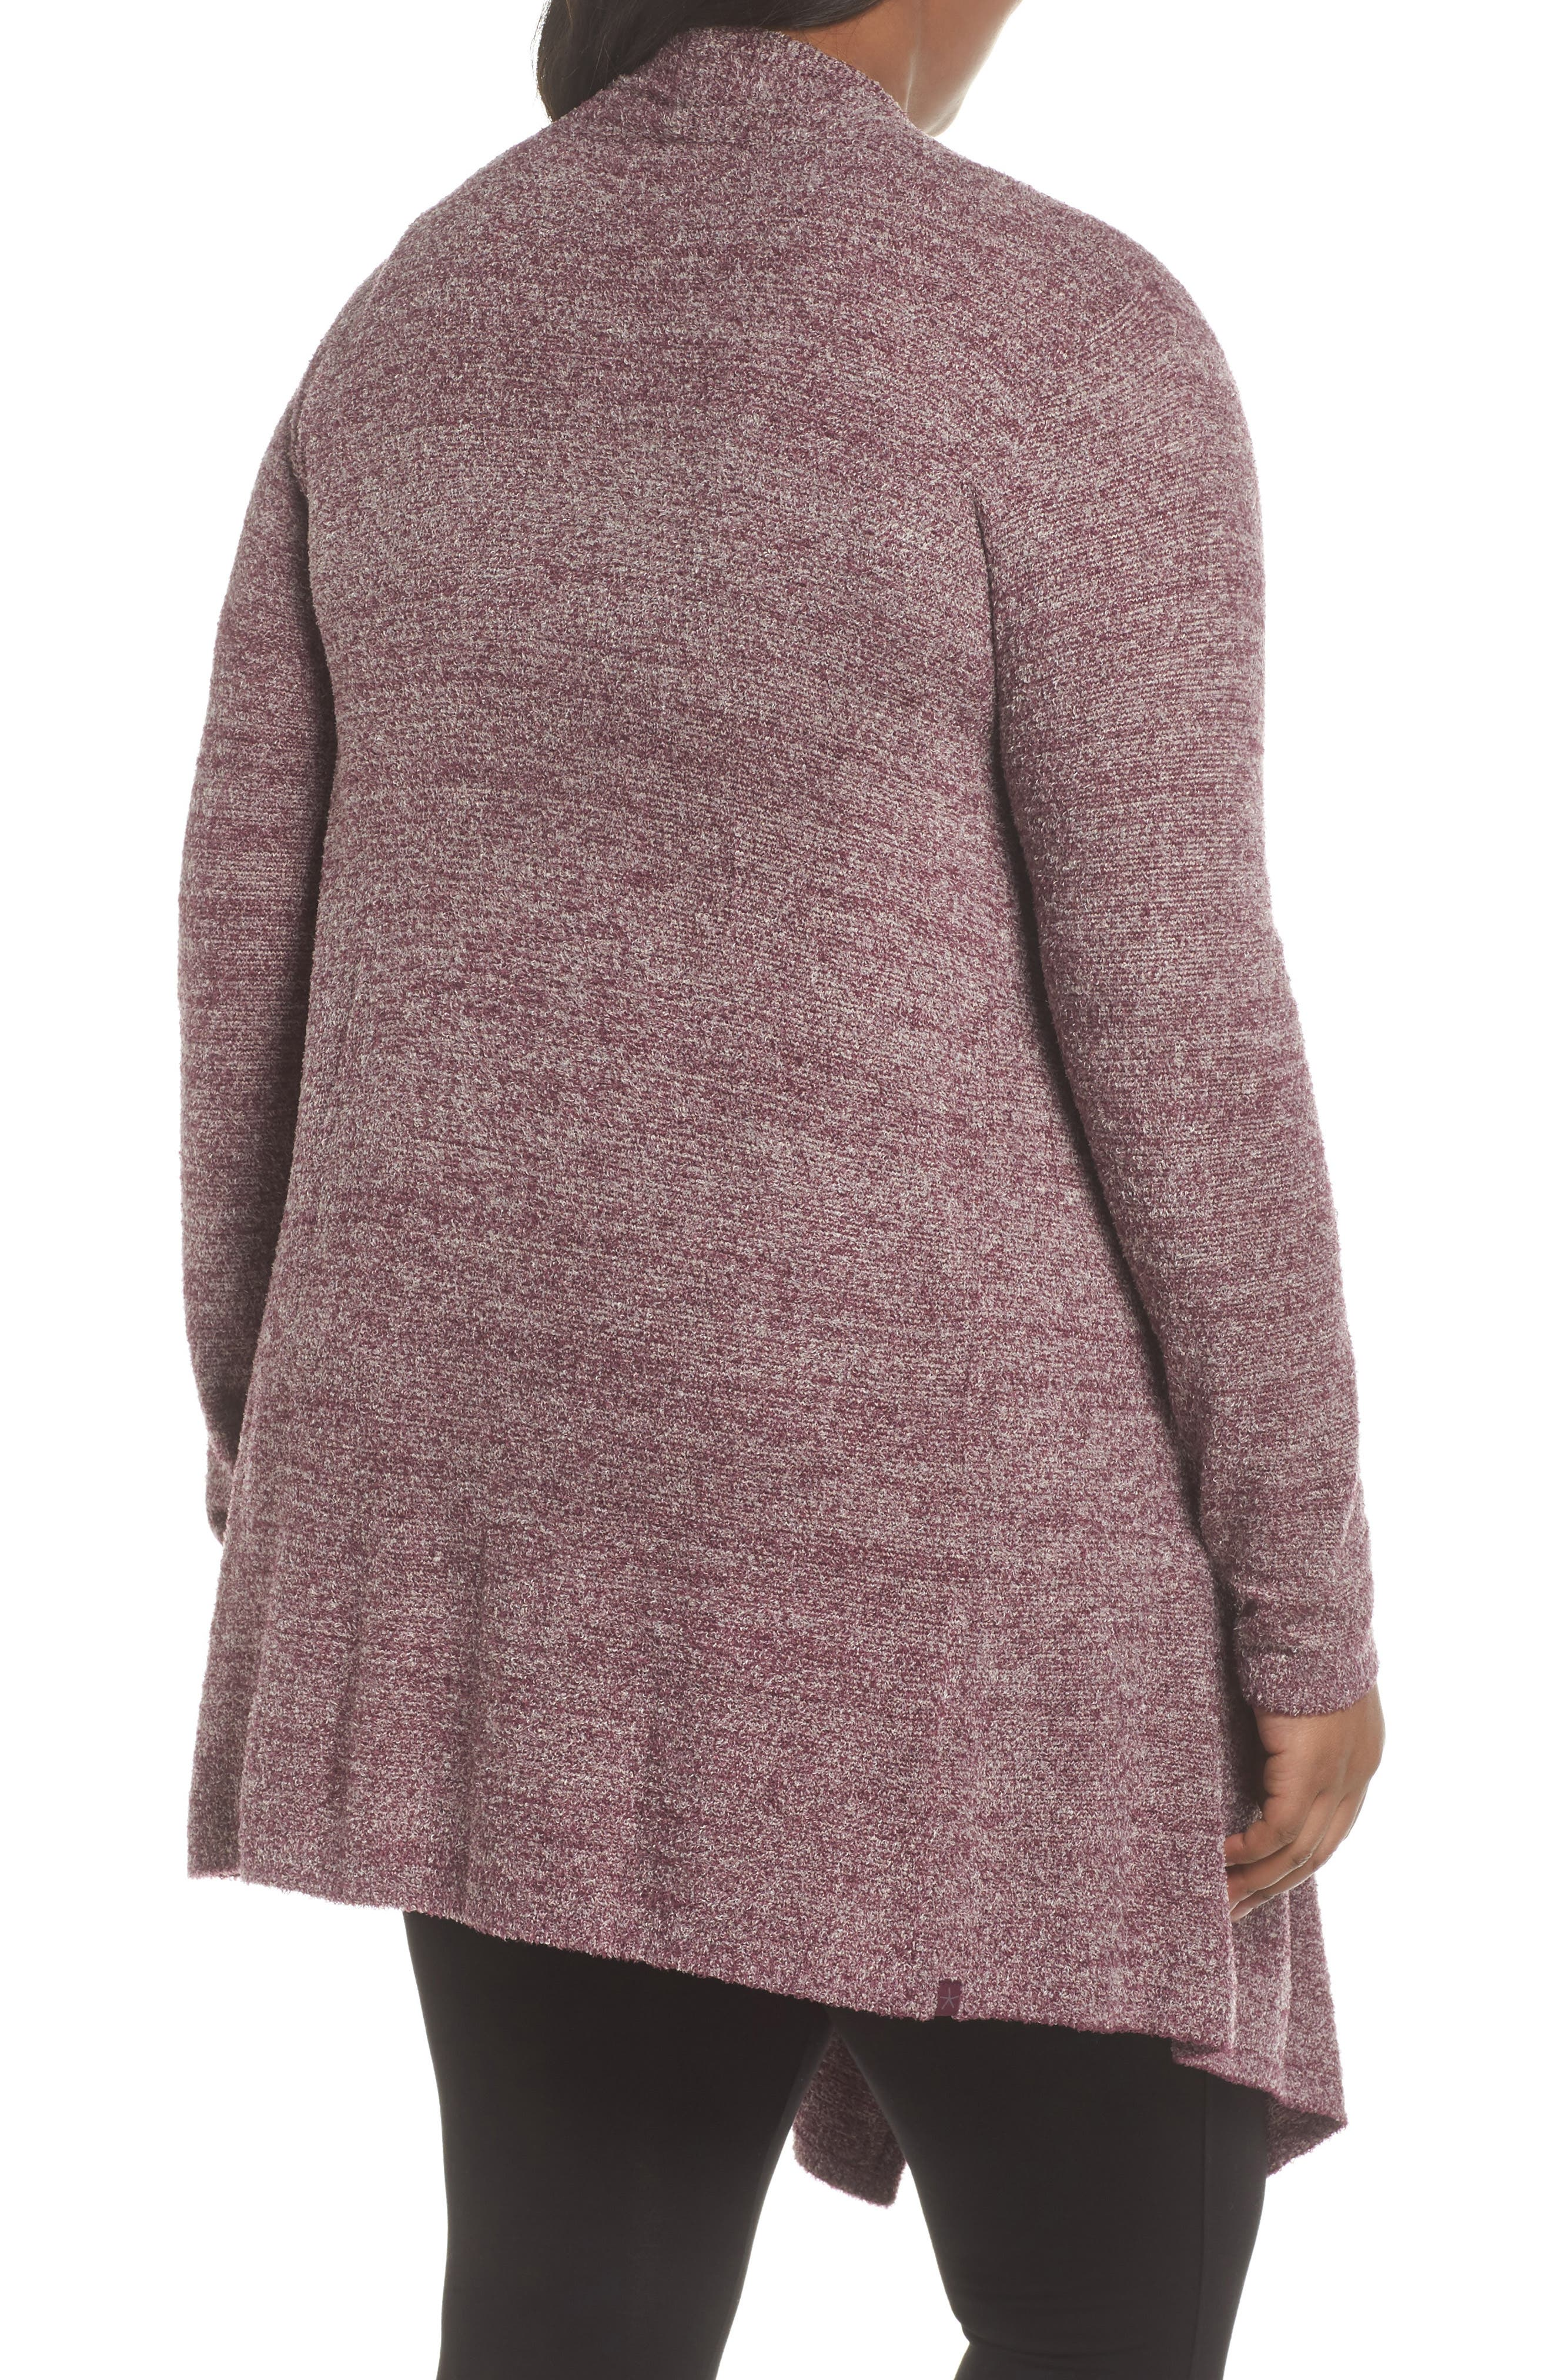 CozyChic Lite<sup>®</sup> Calypso Wrap Cardigan,                             Alternate thumbnail 2, color,                             Burgundy/ Stone